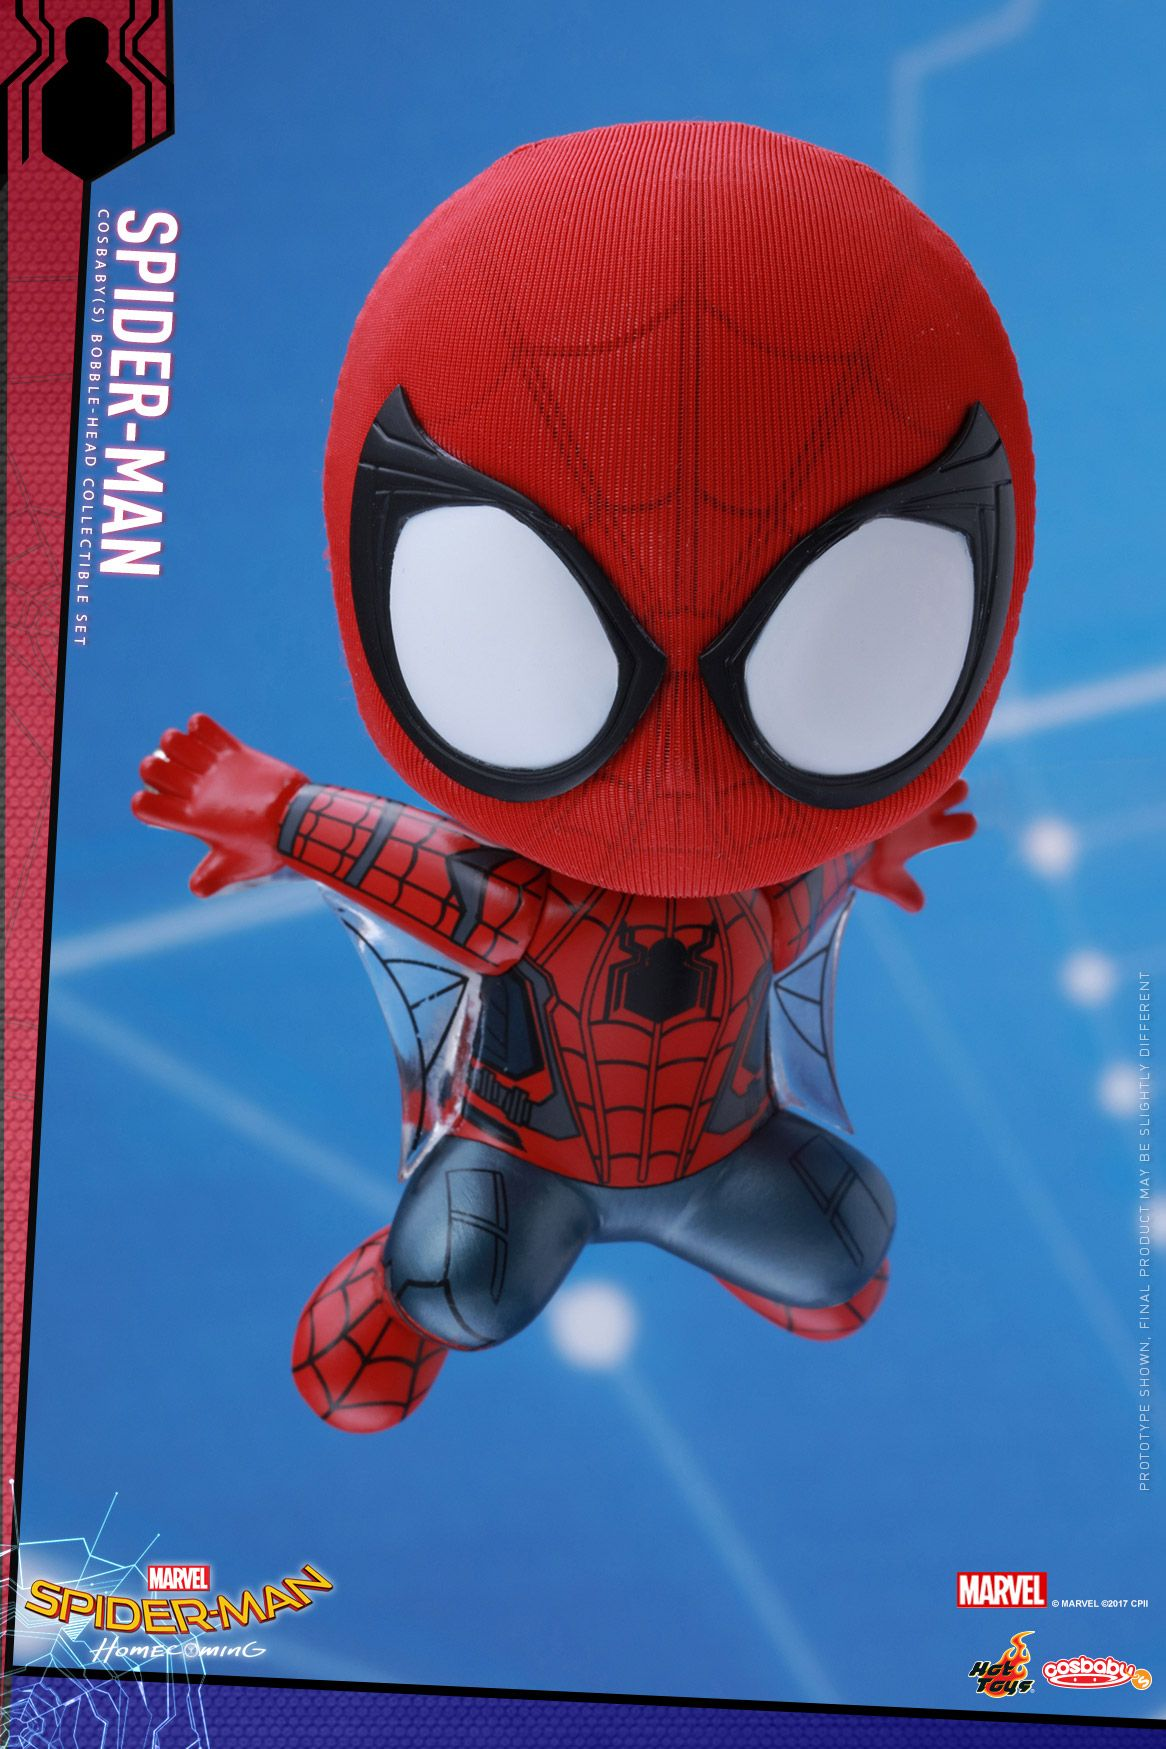 Cosbaby Figures For Spider Man Homecoming Revealed Con Imagenes